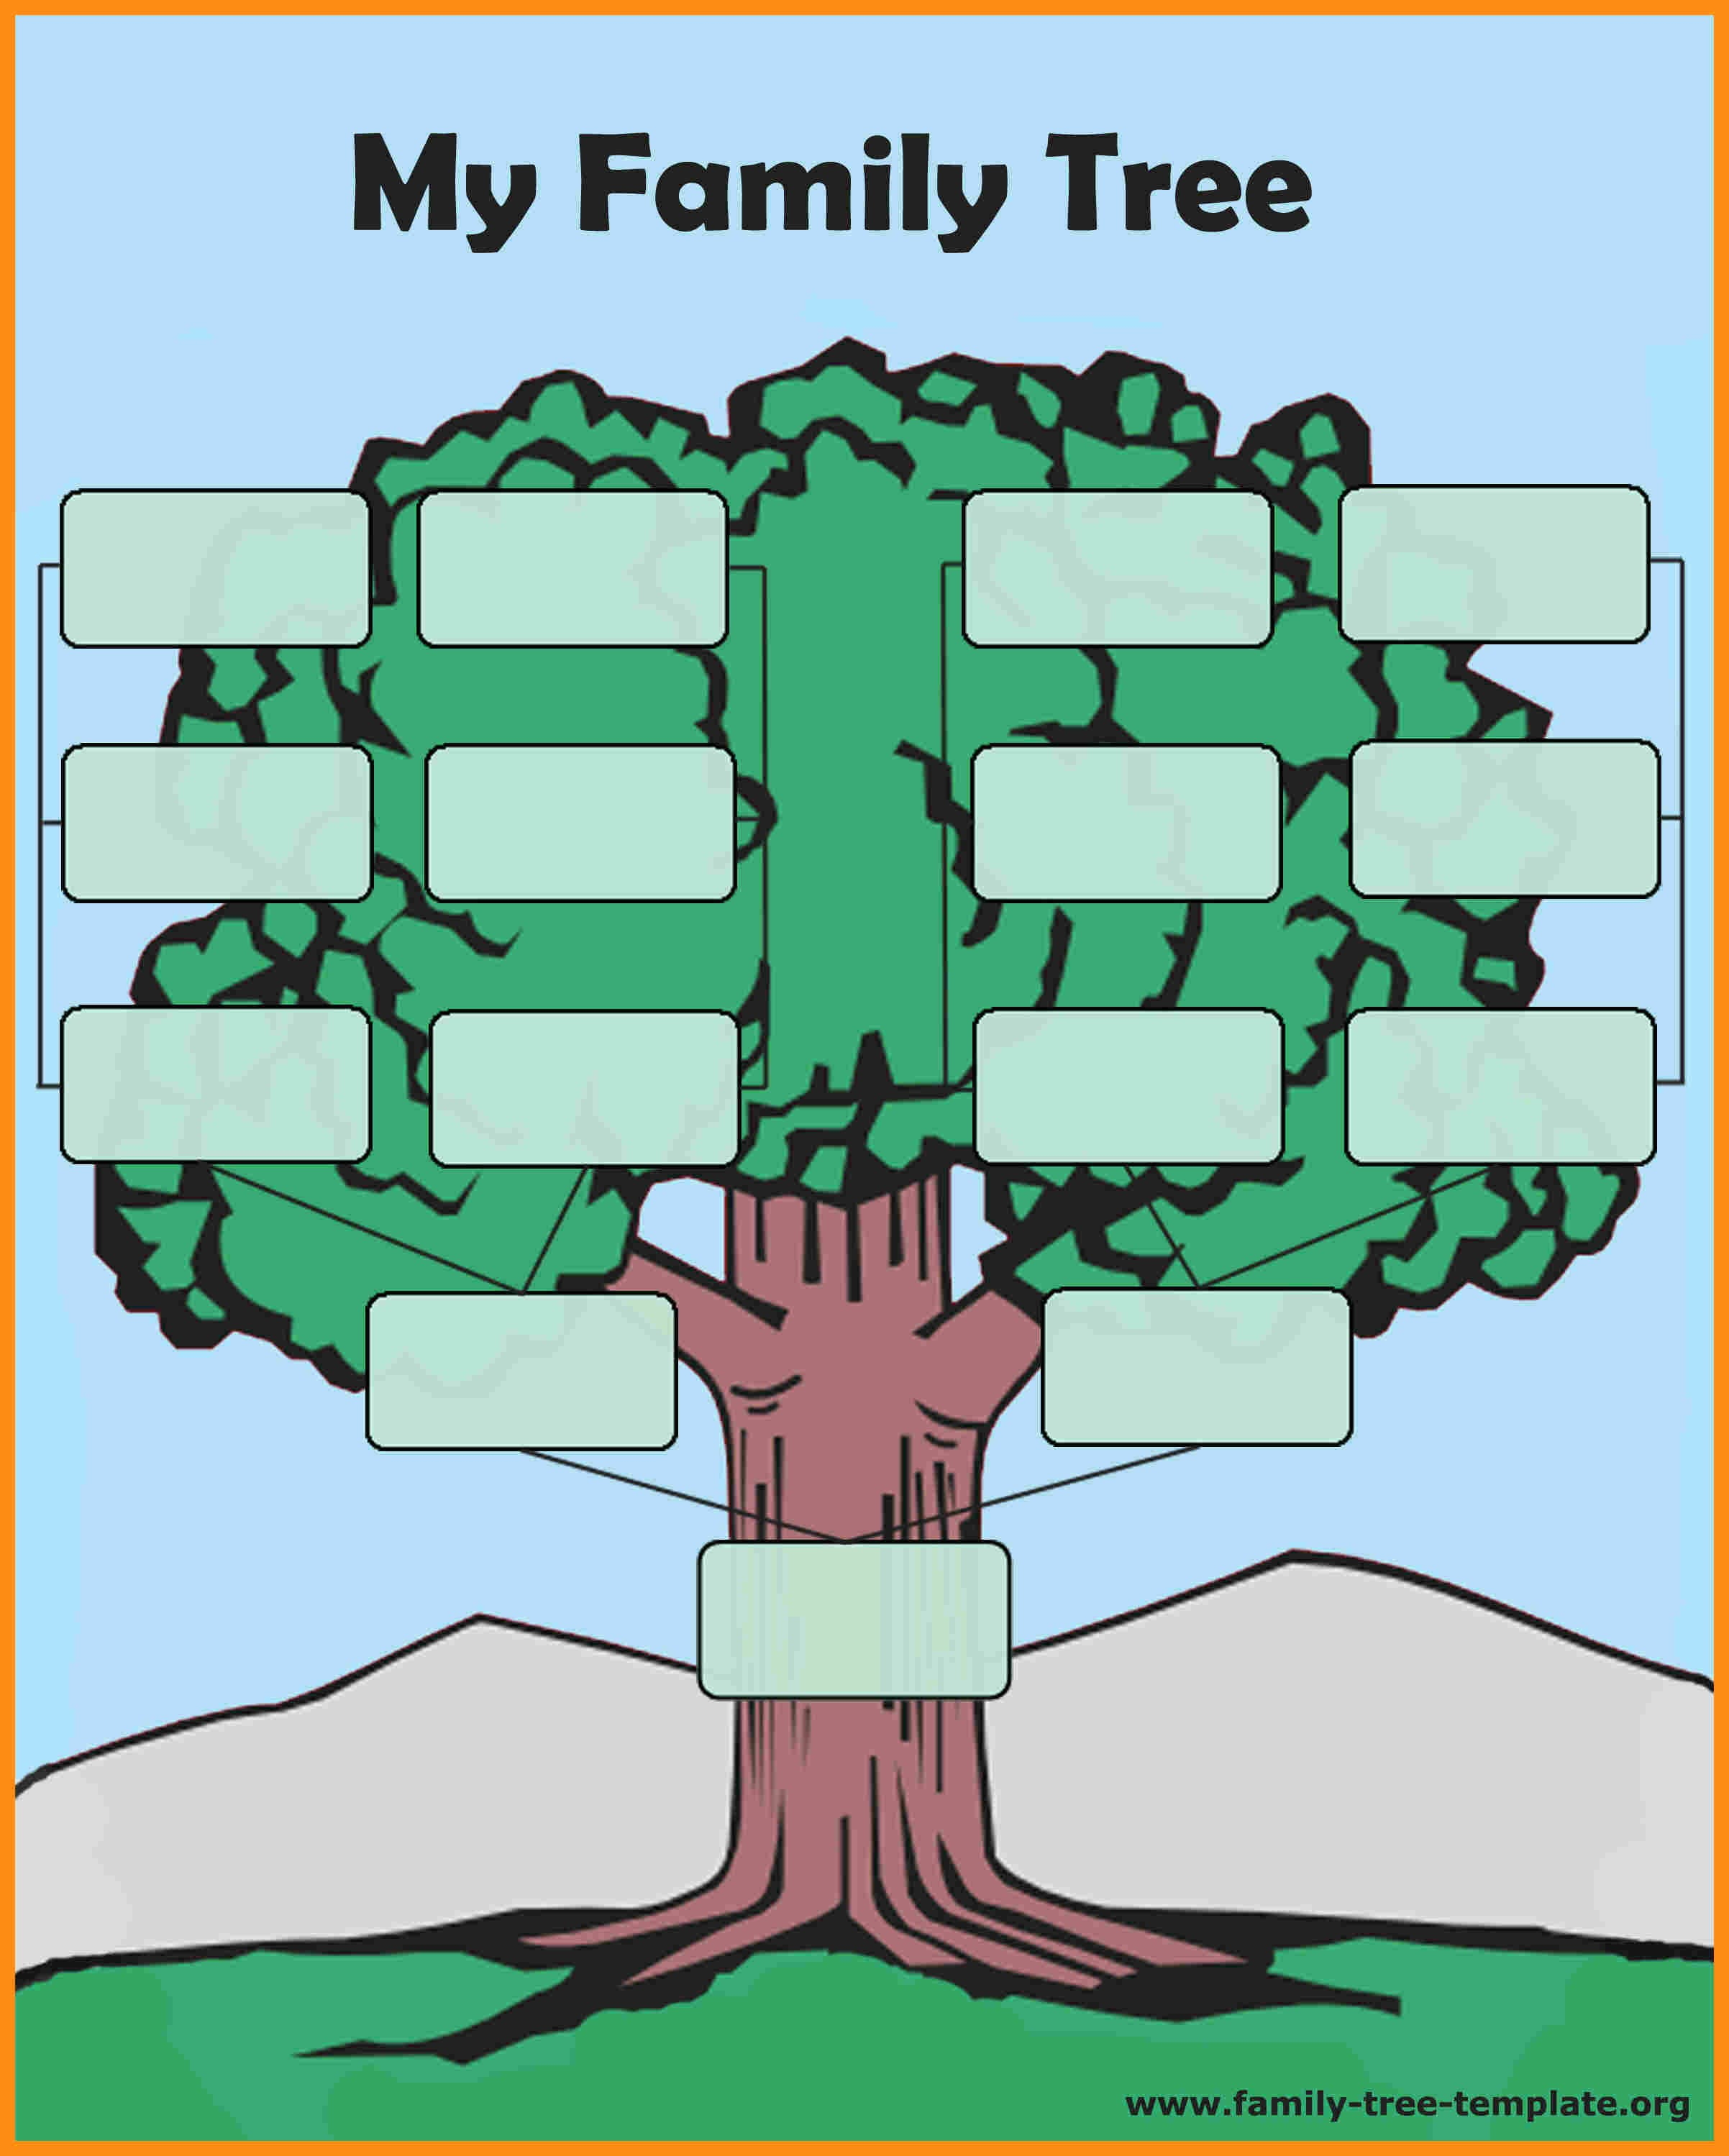 Make Family Tree In Word Awesome Template Family Tree Template